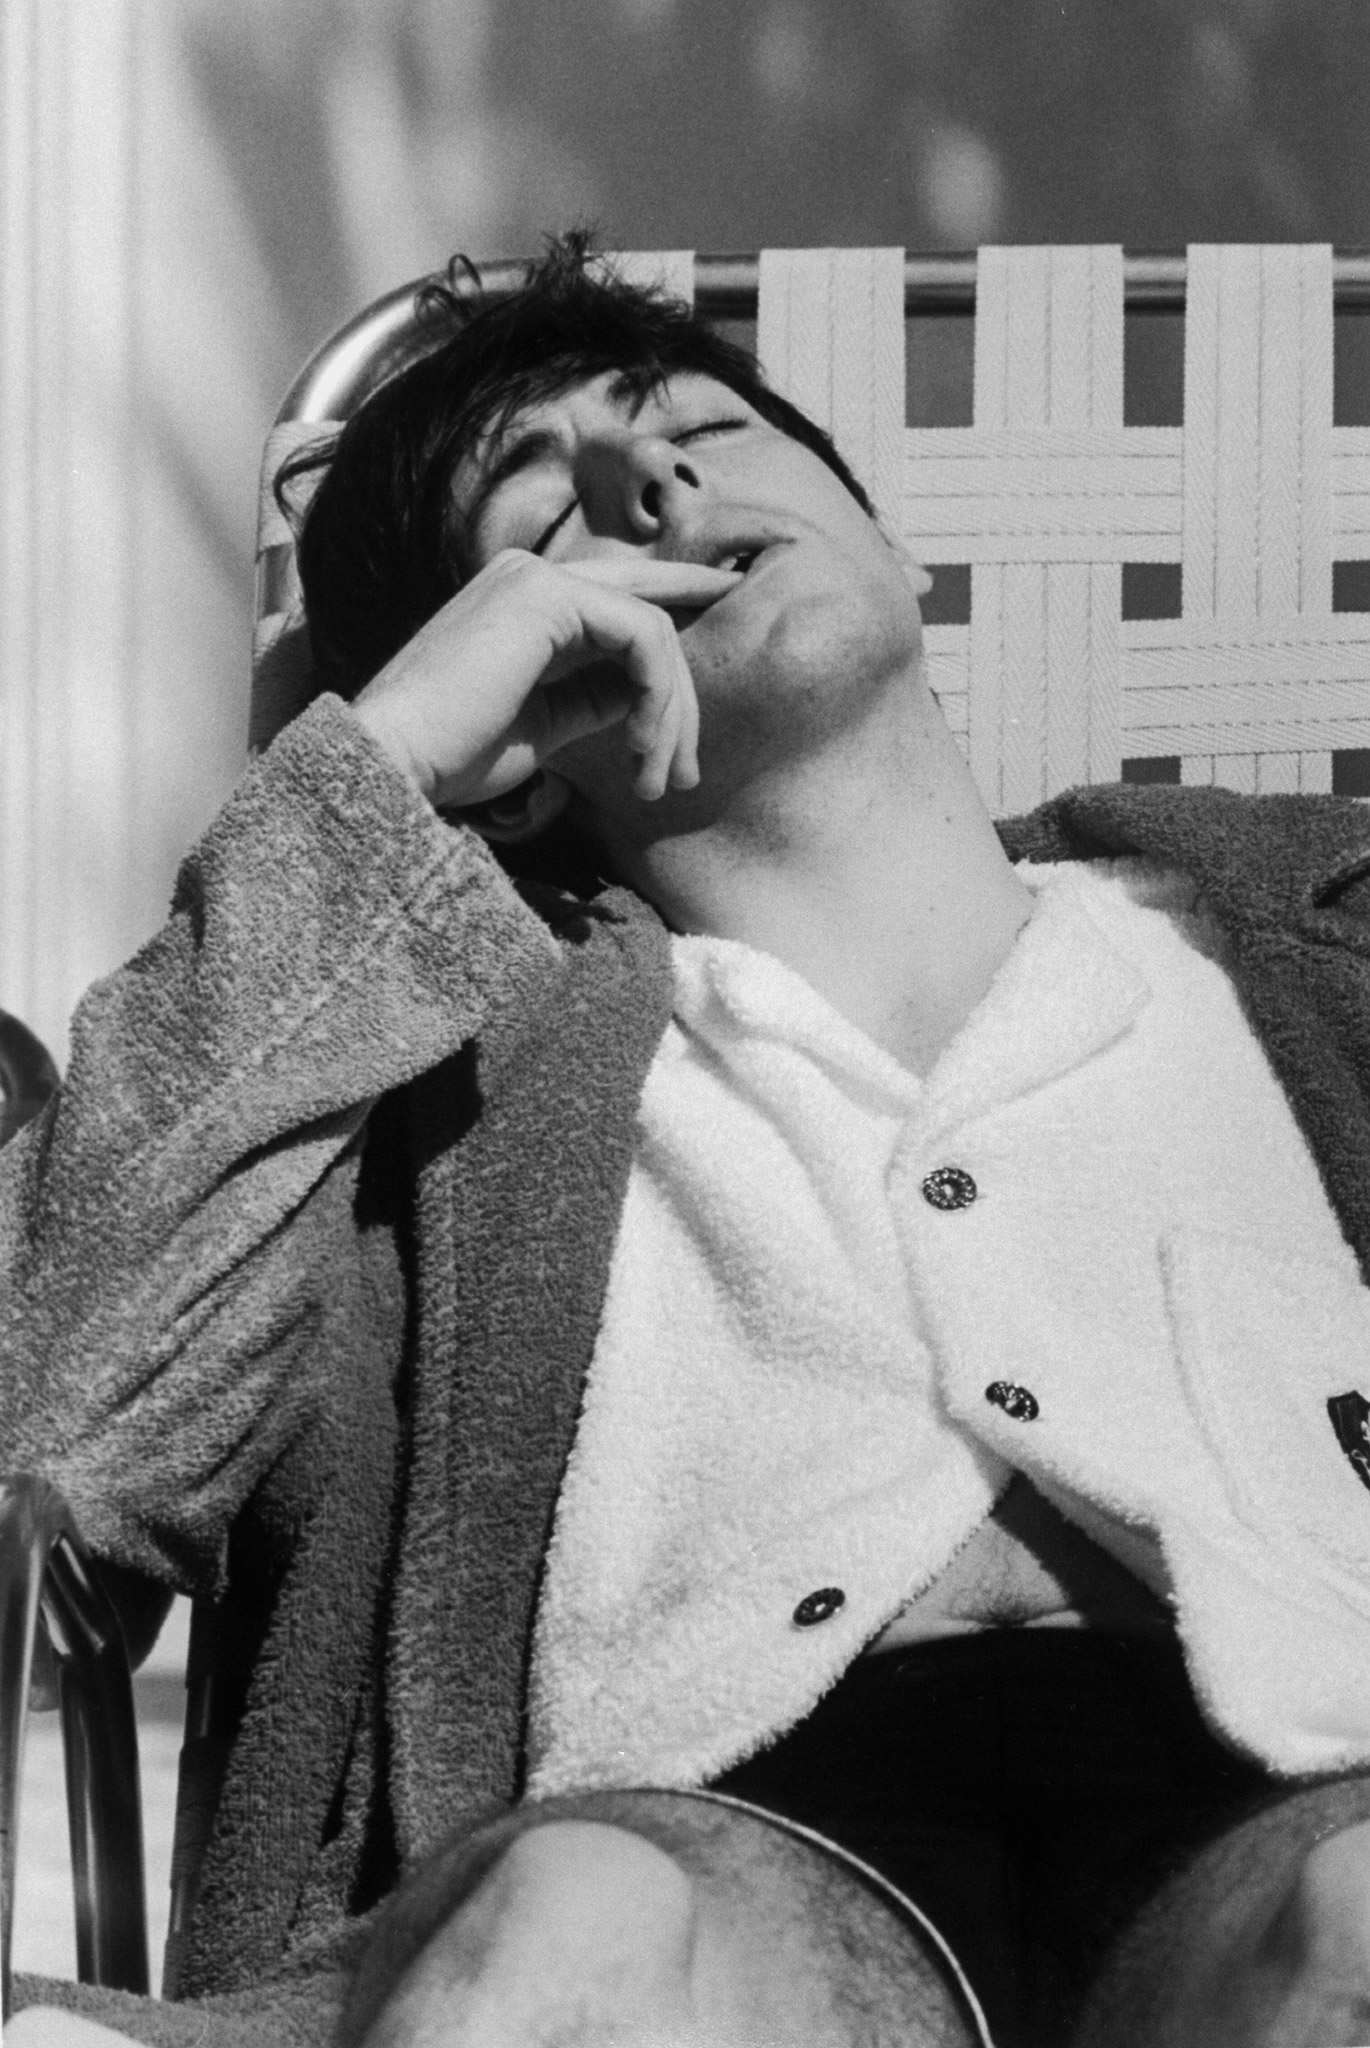 Paul McCartney relaxing on a lounge chair, February 1964.